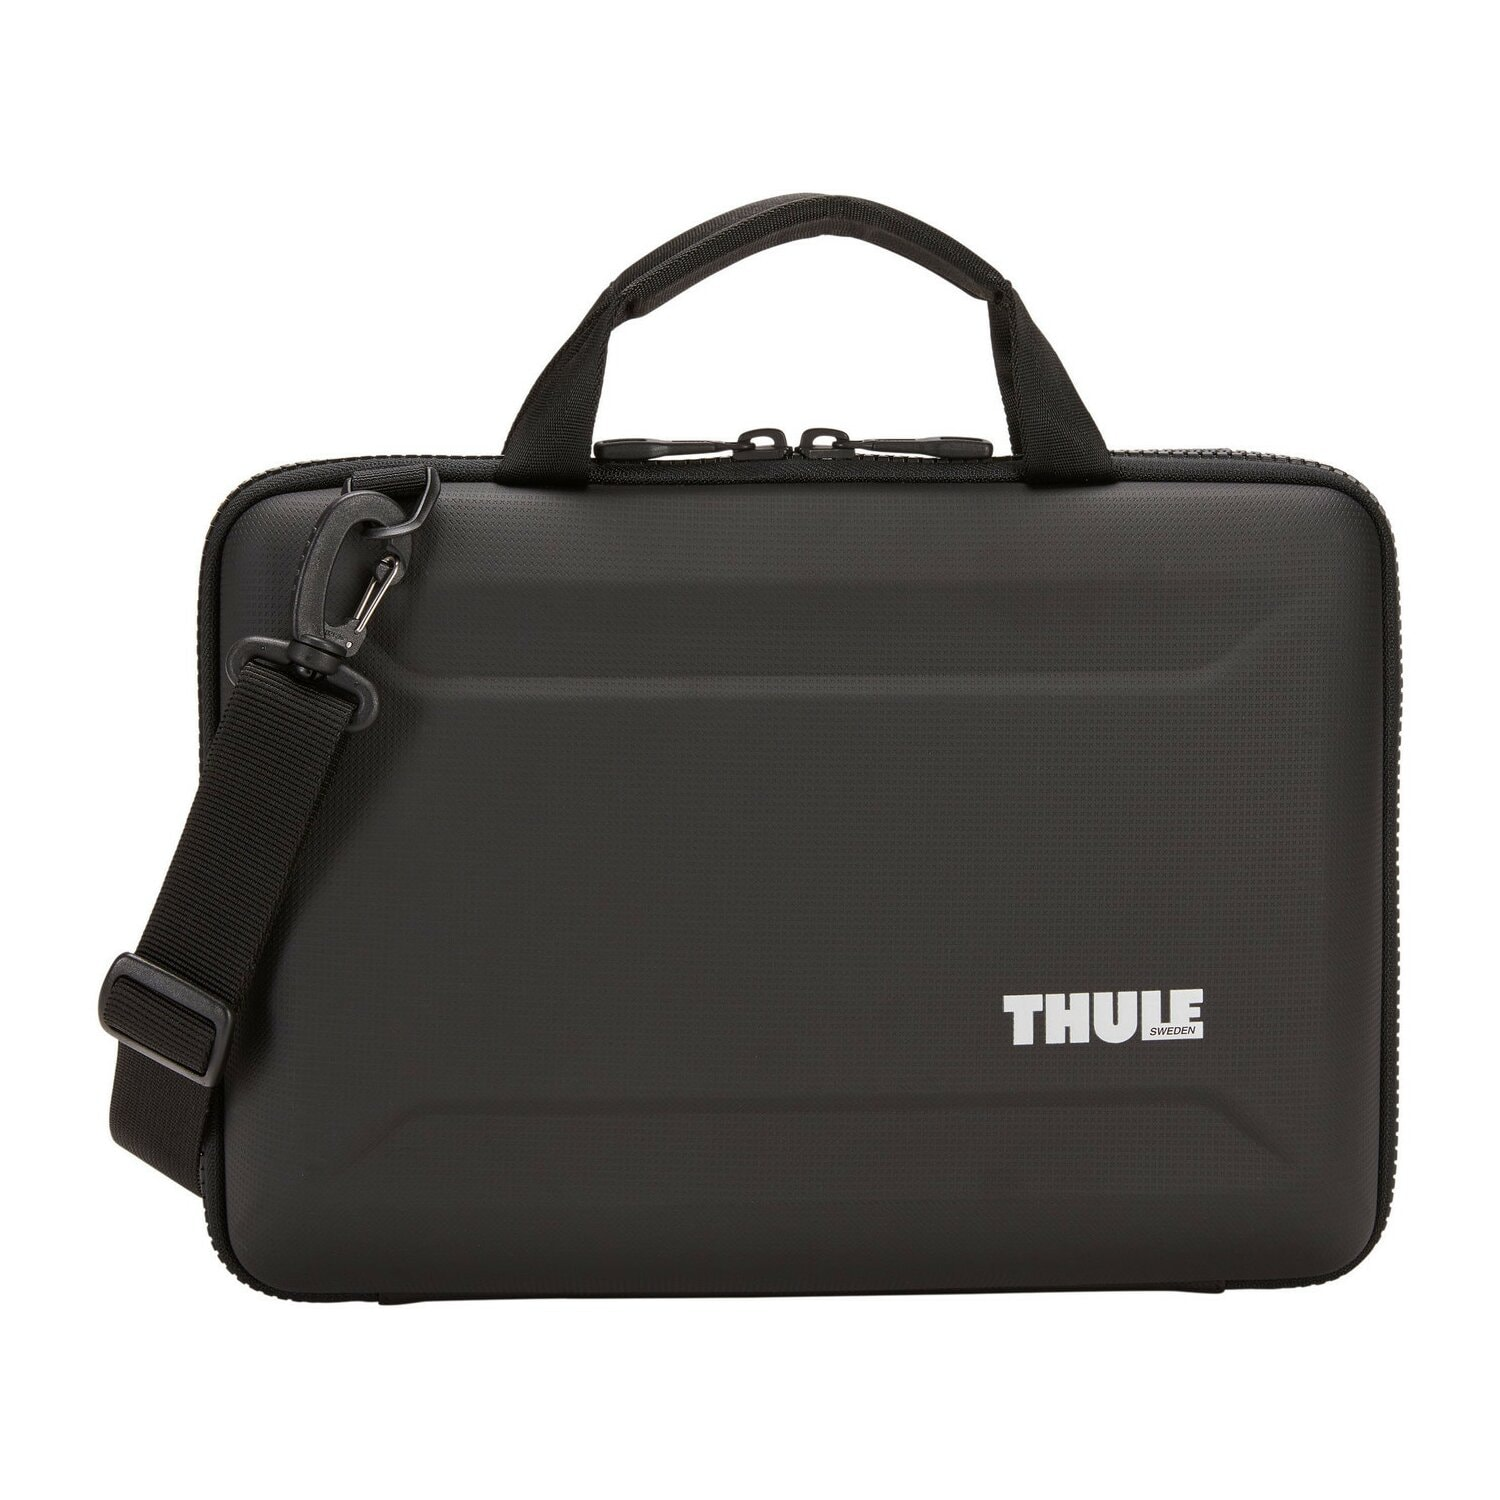 Torba na laptopa THULE Gauntlet 4.0 Attache do Apple MacBook Pro (2017) 13 cali/MacBook Air (2018) Czarny